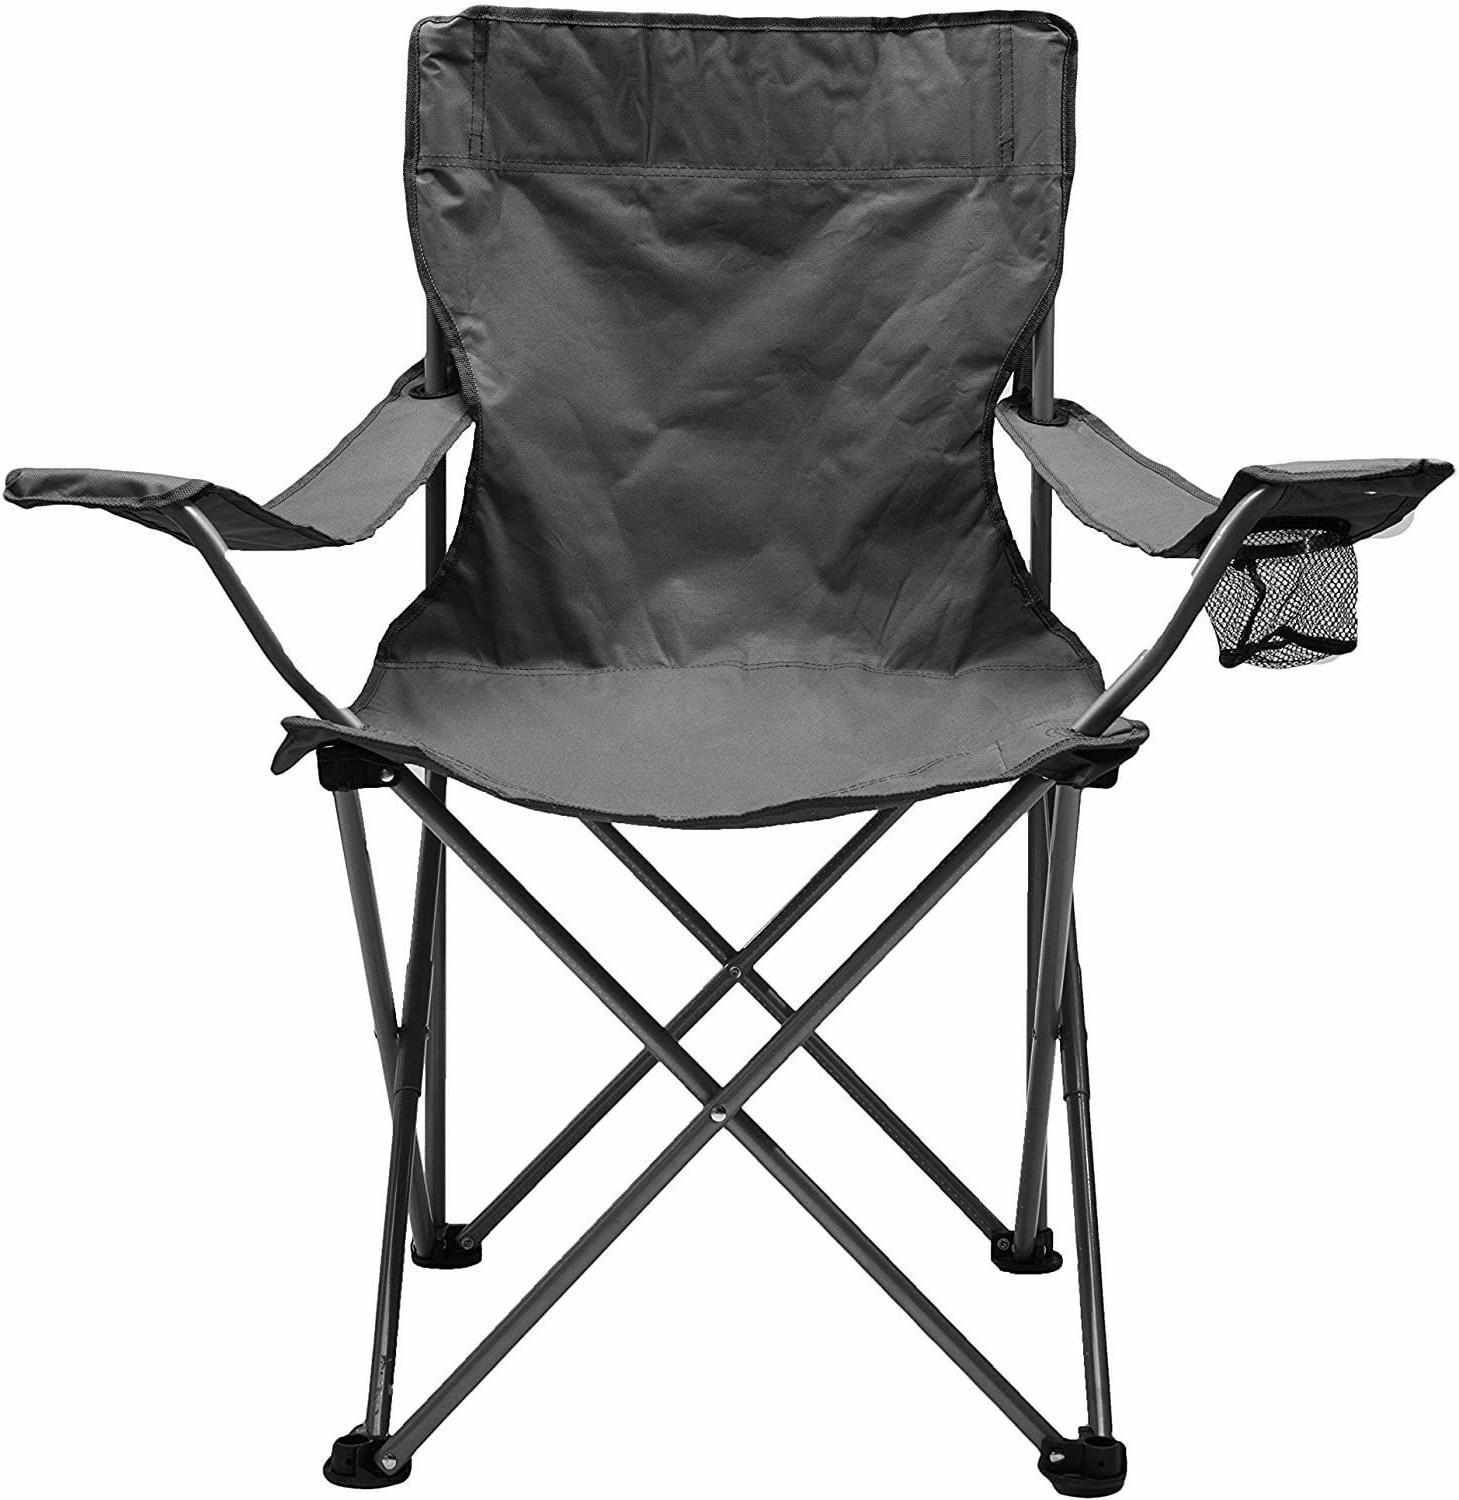 Heavy Duty Portable Folding Camping Chair Outdoor Beach Fish